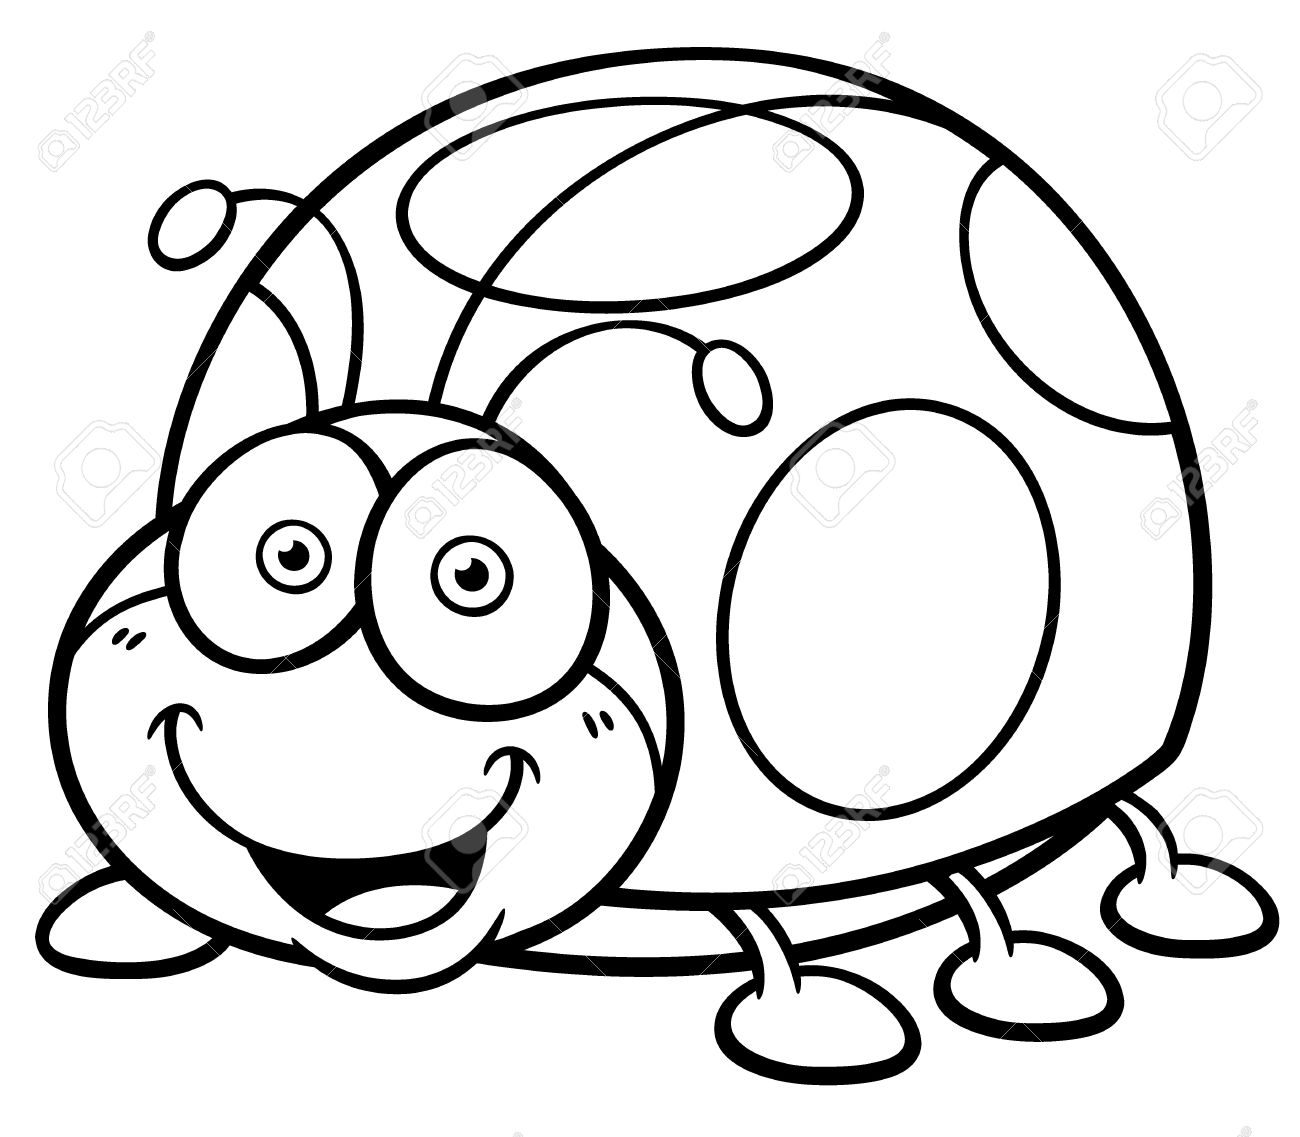 vector illustration of cartoon lady bug coloring book stock vector 32308091 - Cartoon Coloring Book